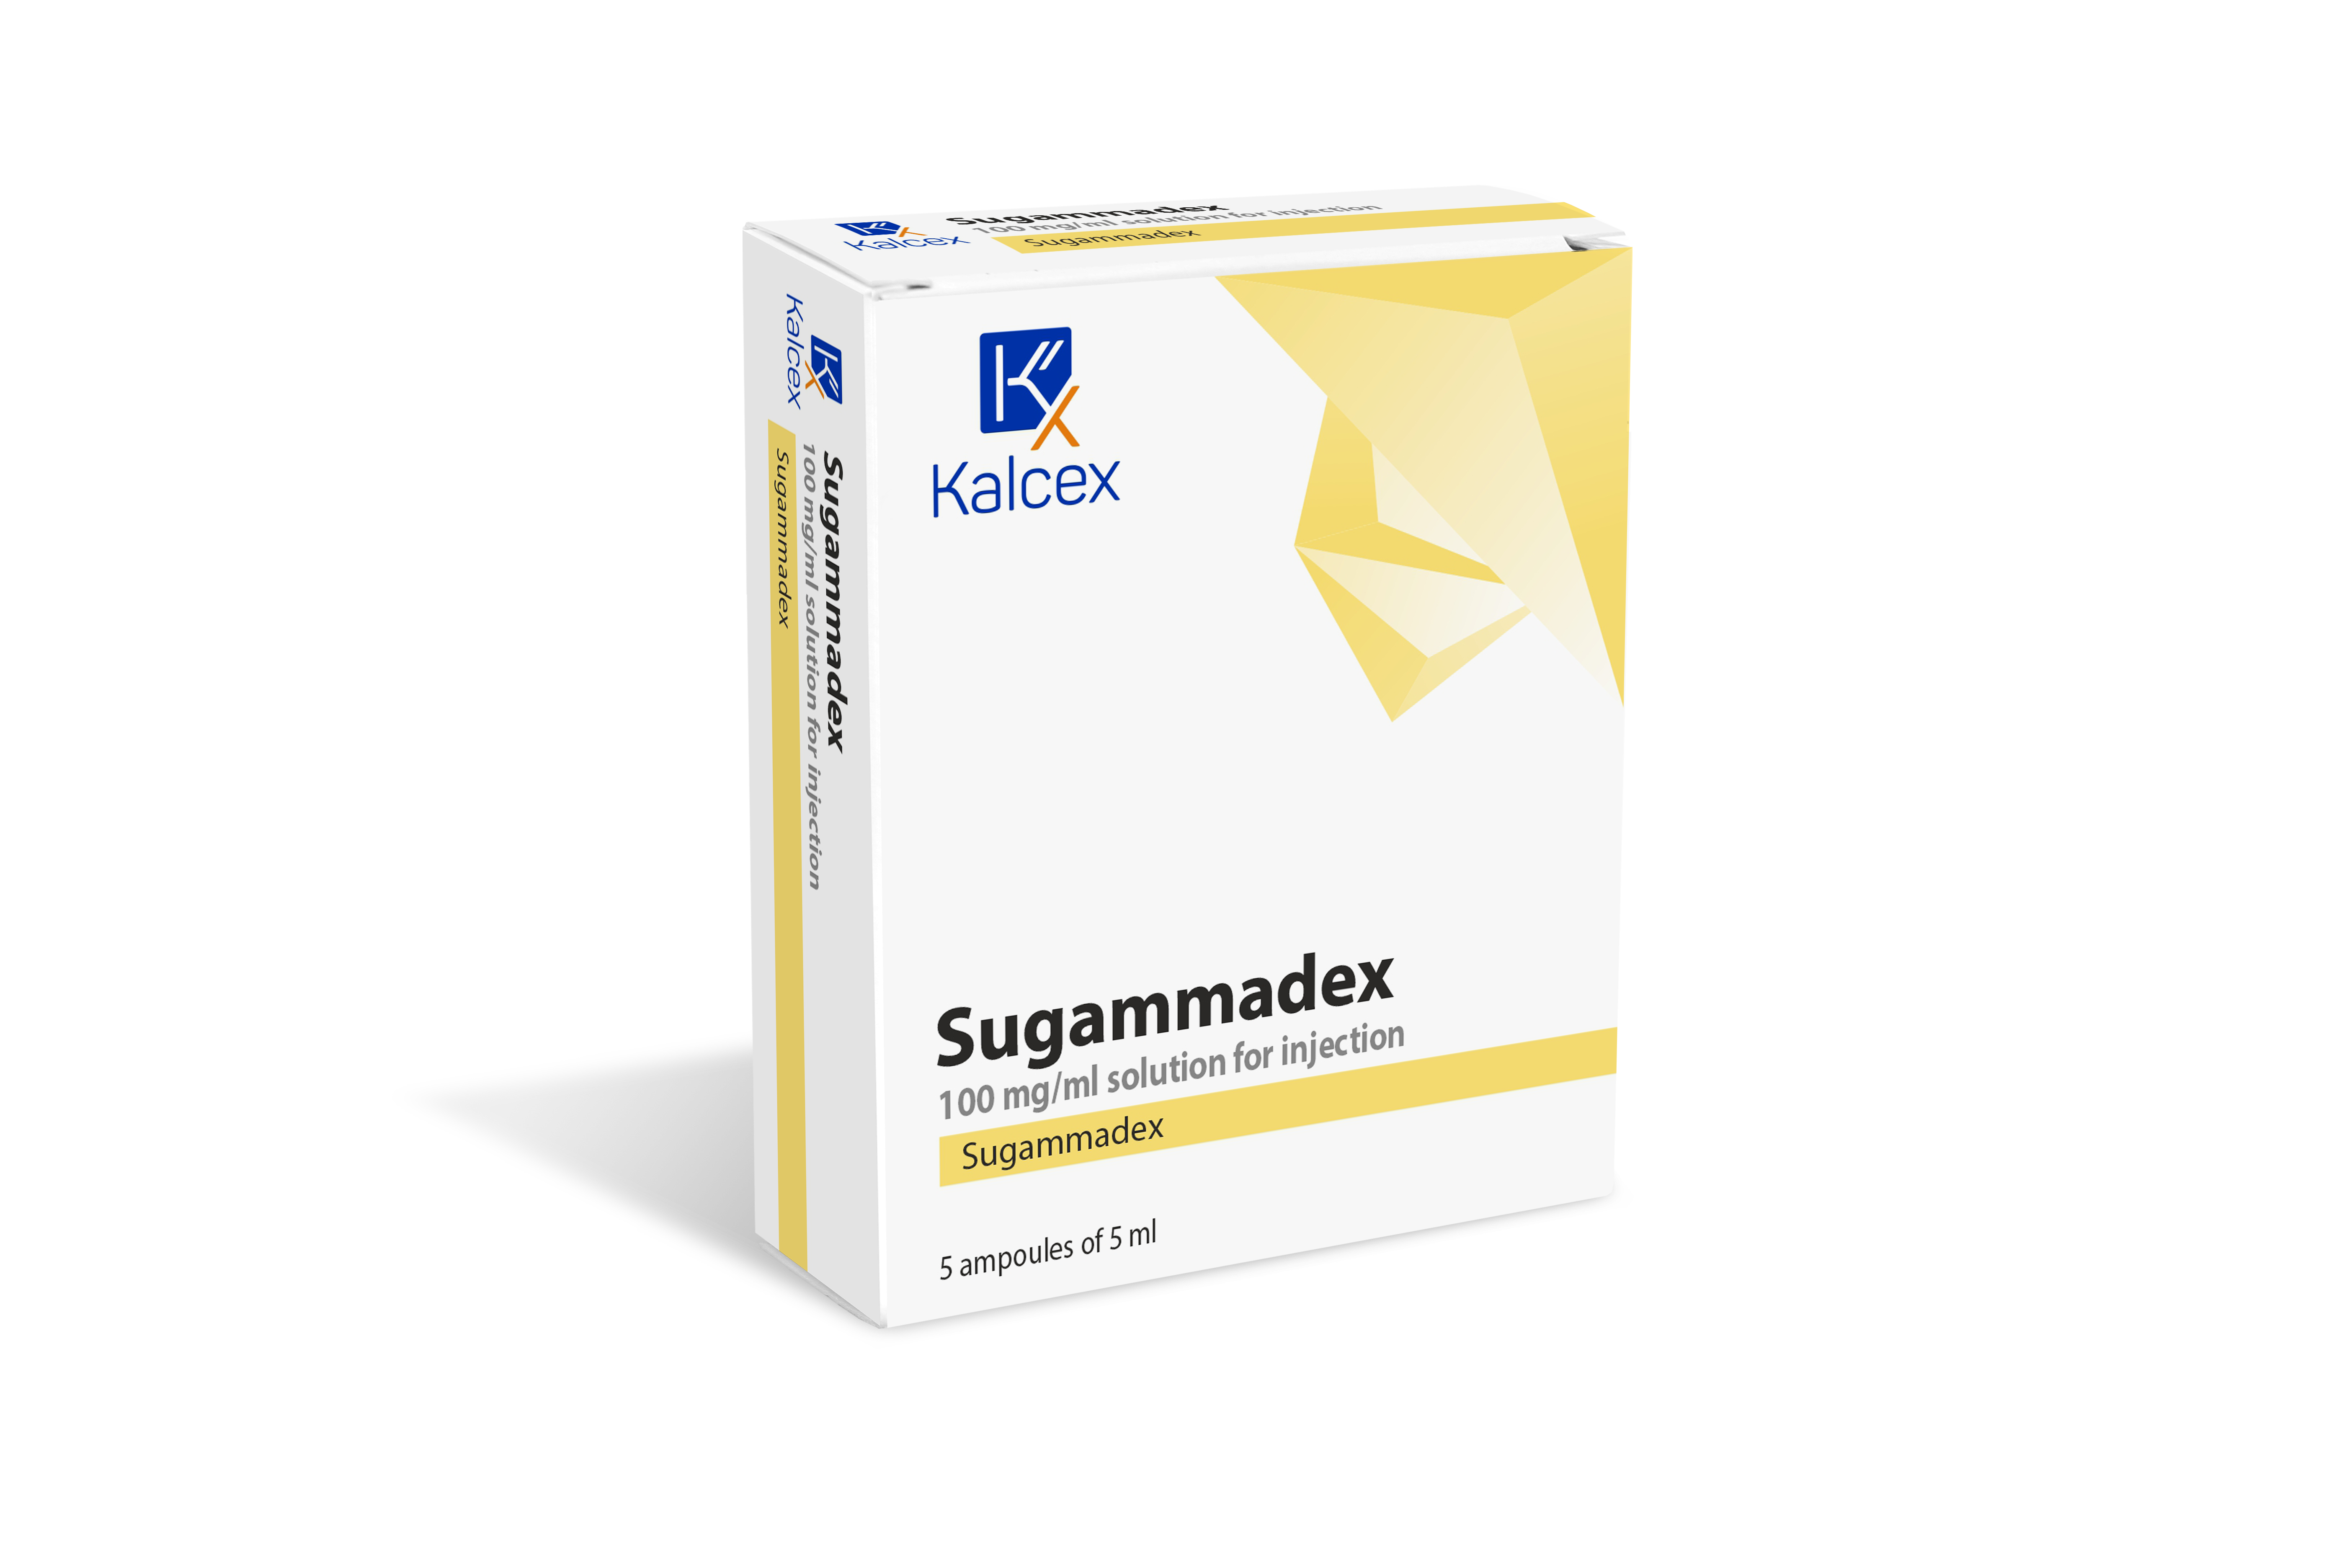 Sugammadex injection*